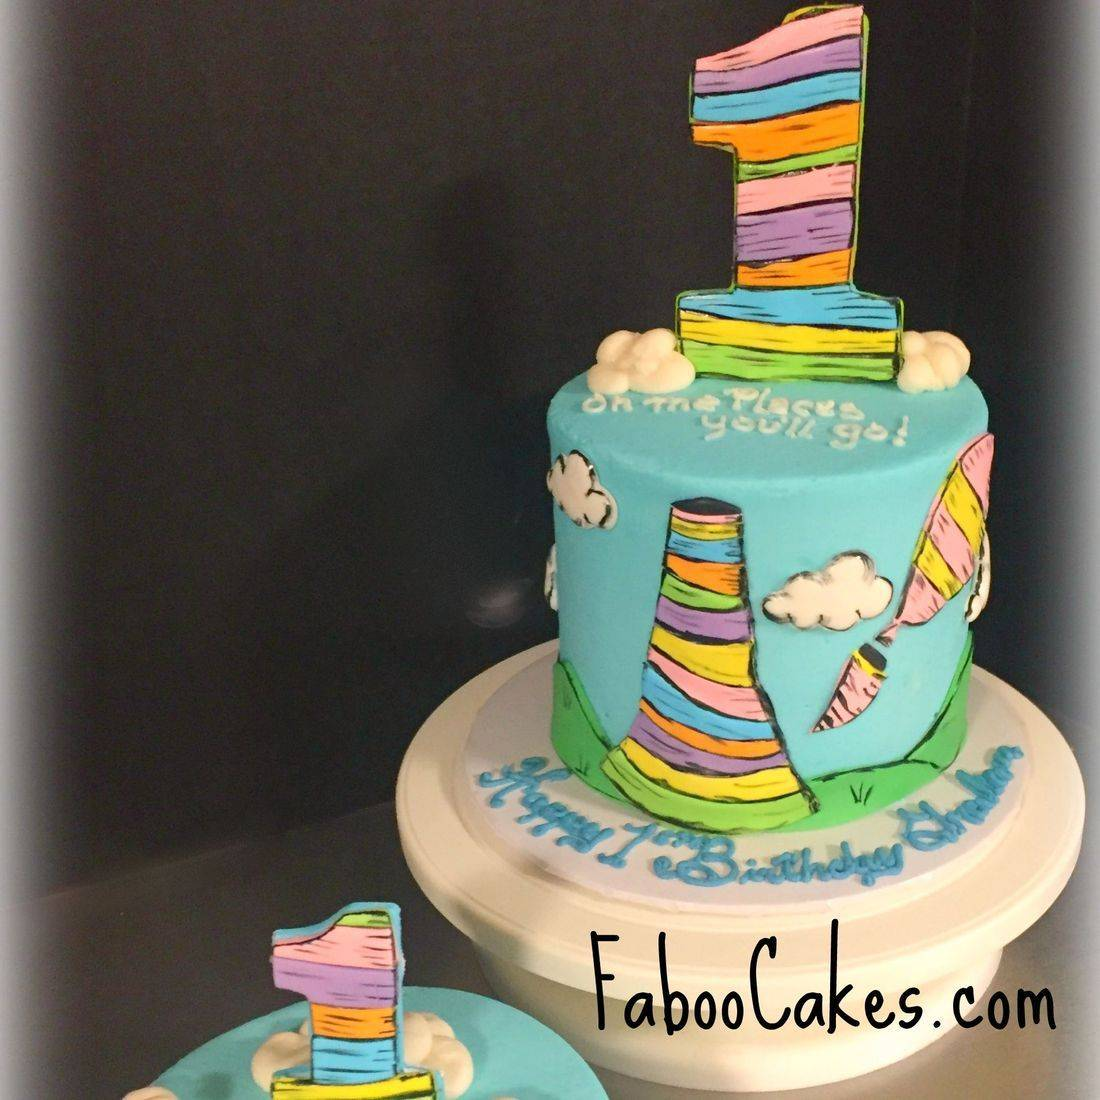 dr seuss cake oh the places you'll go birthday cake first birthday cake